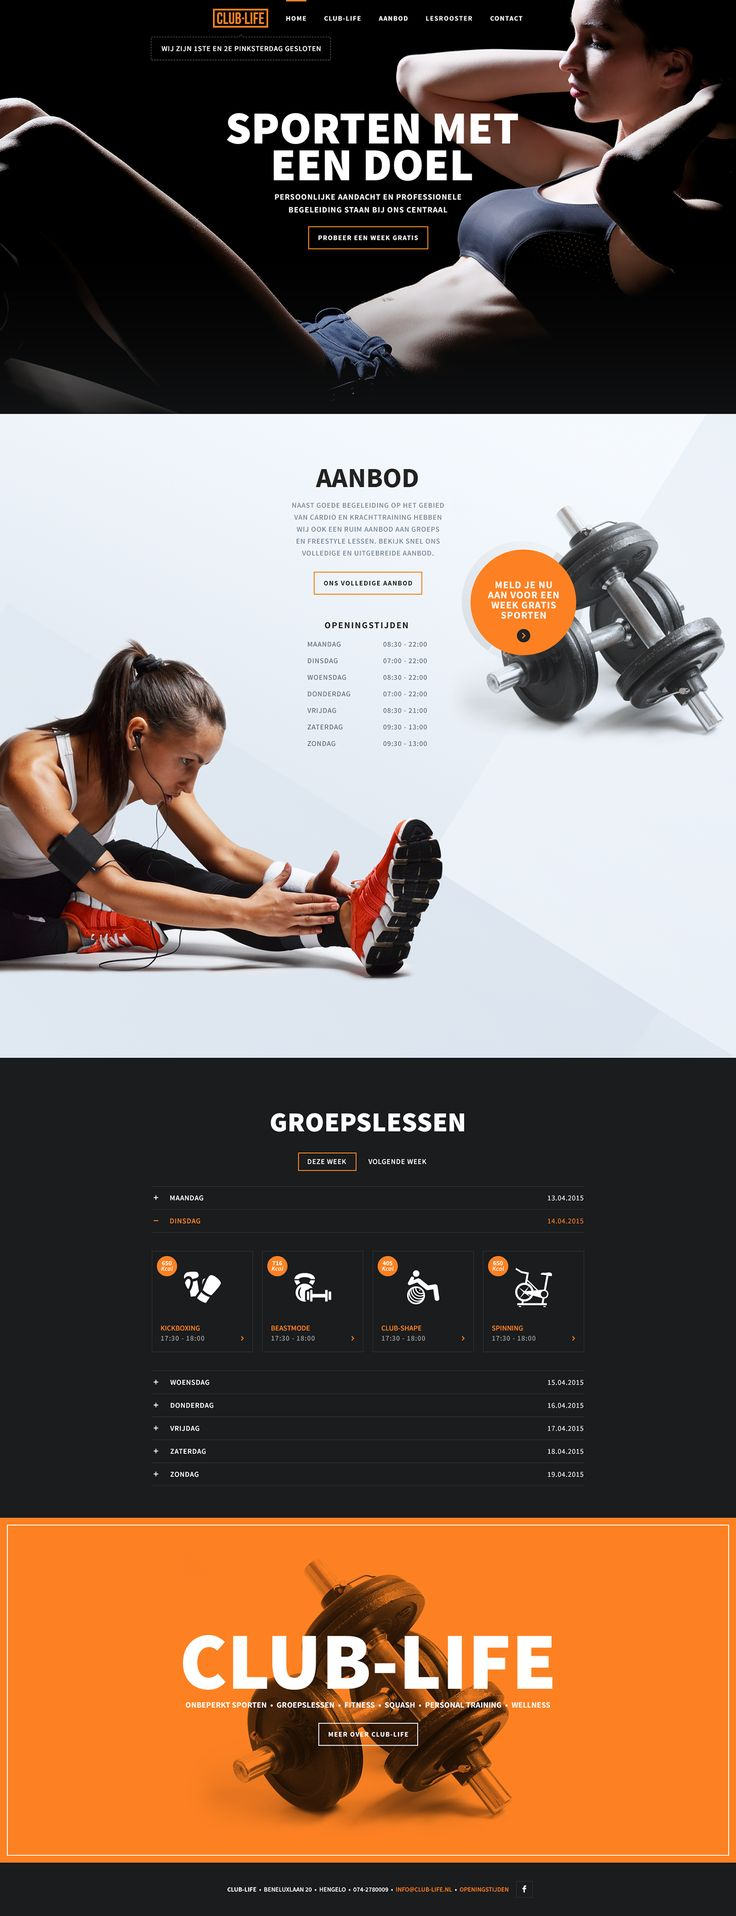 A new website design for a gym in our neighbourhood. Because a great gym, deserves a great website.